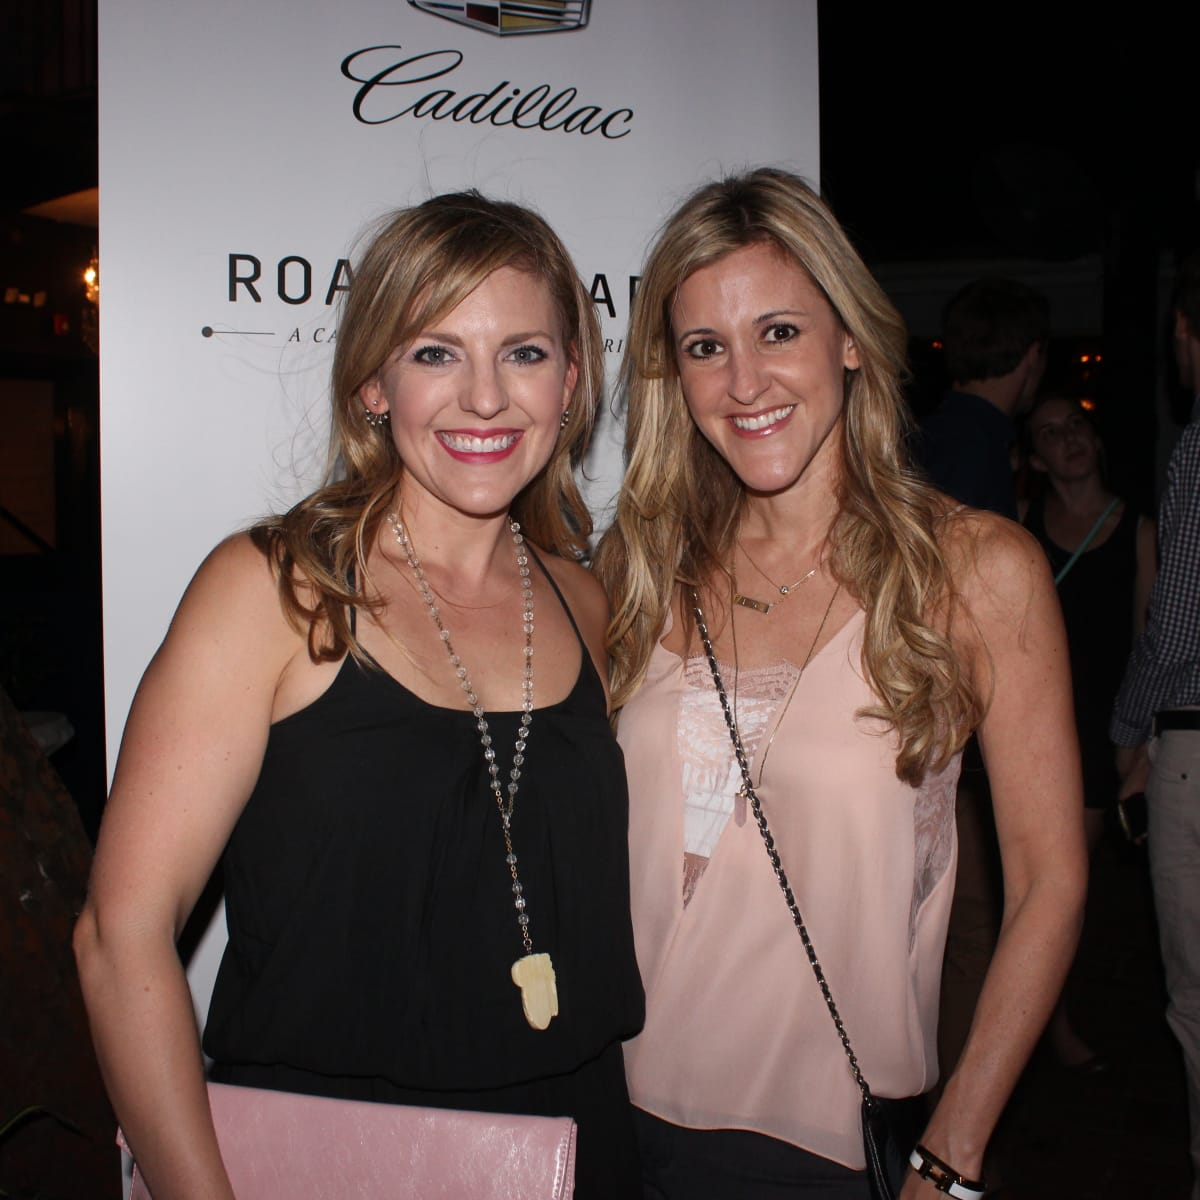 Houston, Cadillac Road to Table dinner, September 2015, Courtney Perna, Courtney Zuboswki Haas